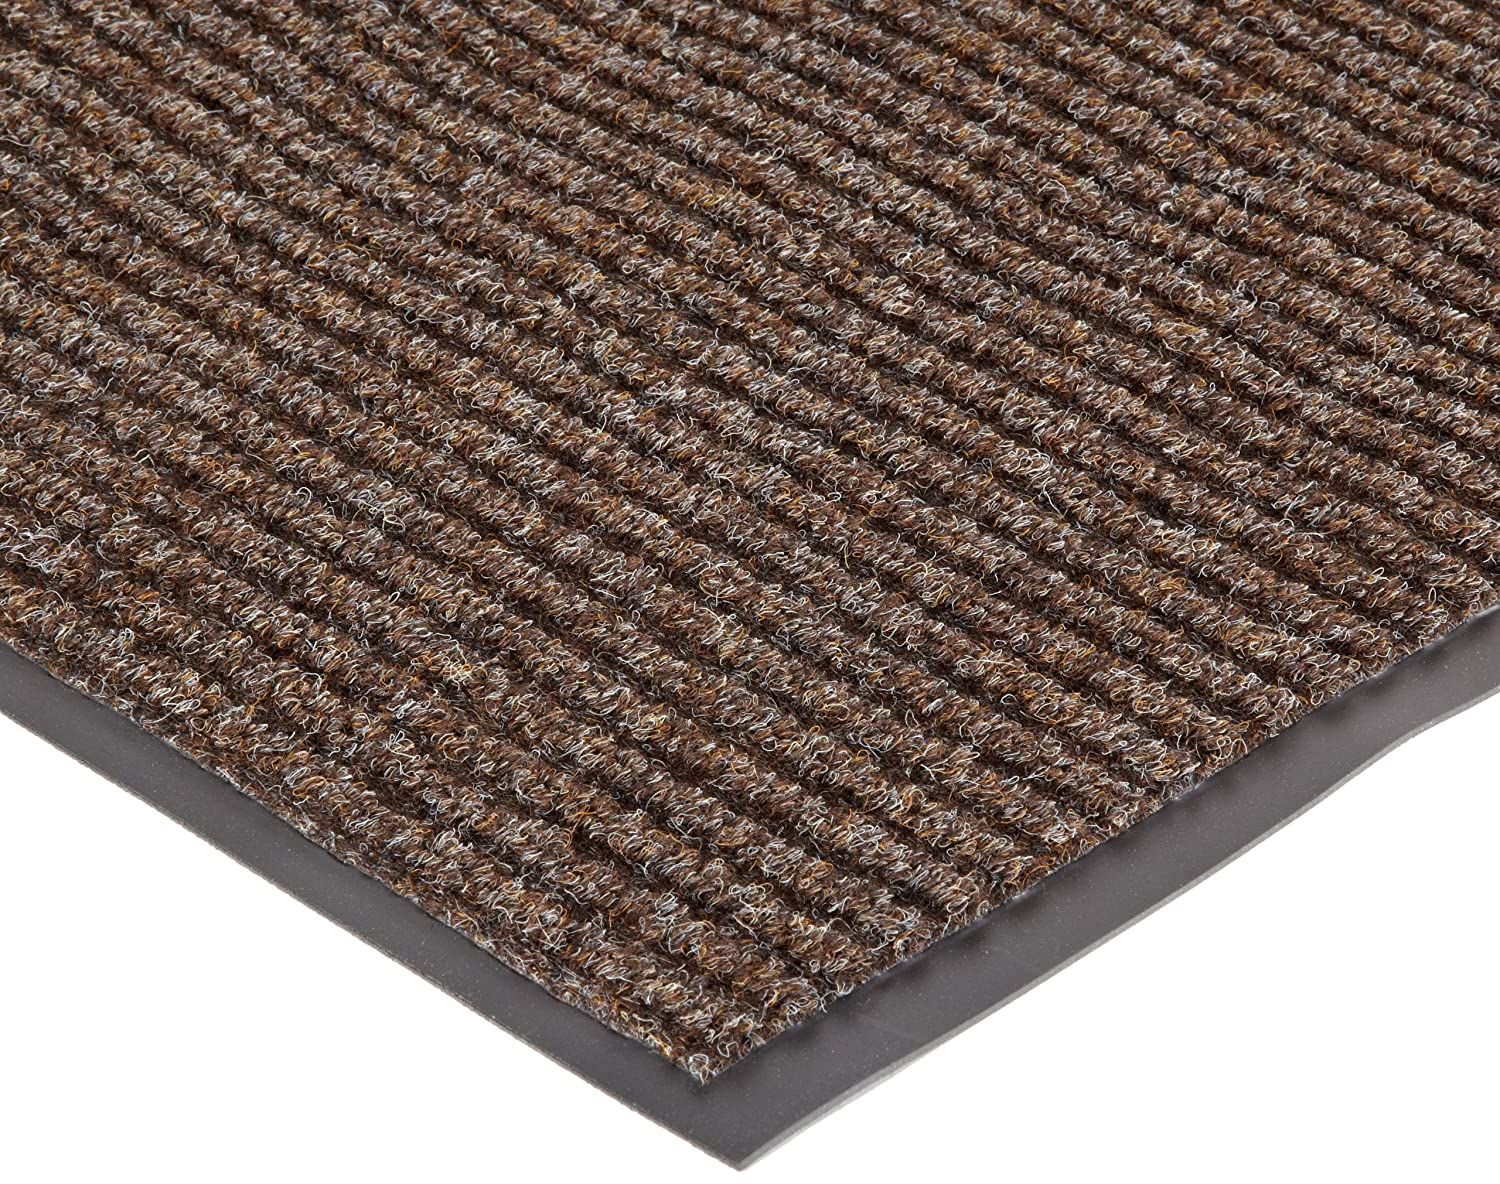 NoTrax 109 Brush Step Entrance Mat, for Lobbies and Indoor Entranceways, 3' Width x 5' Length x 3/8 Thickness, Brown Superior Manufacturing 109S0035BR